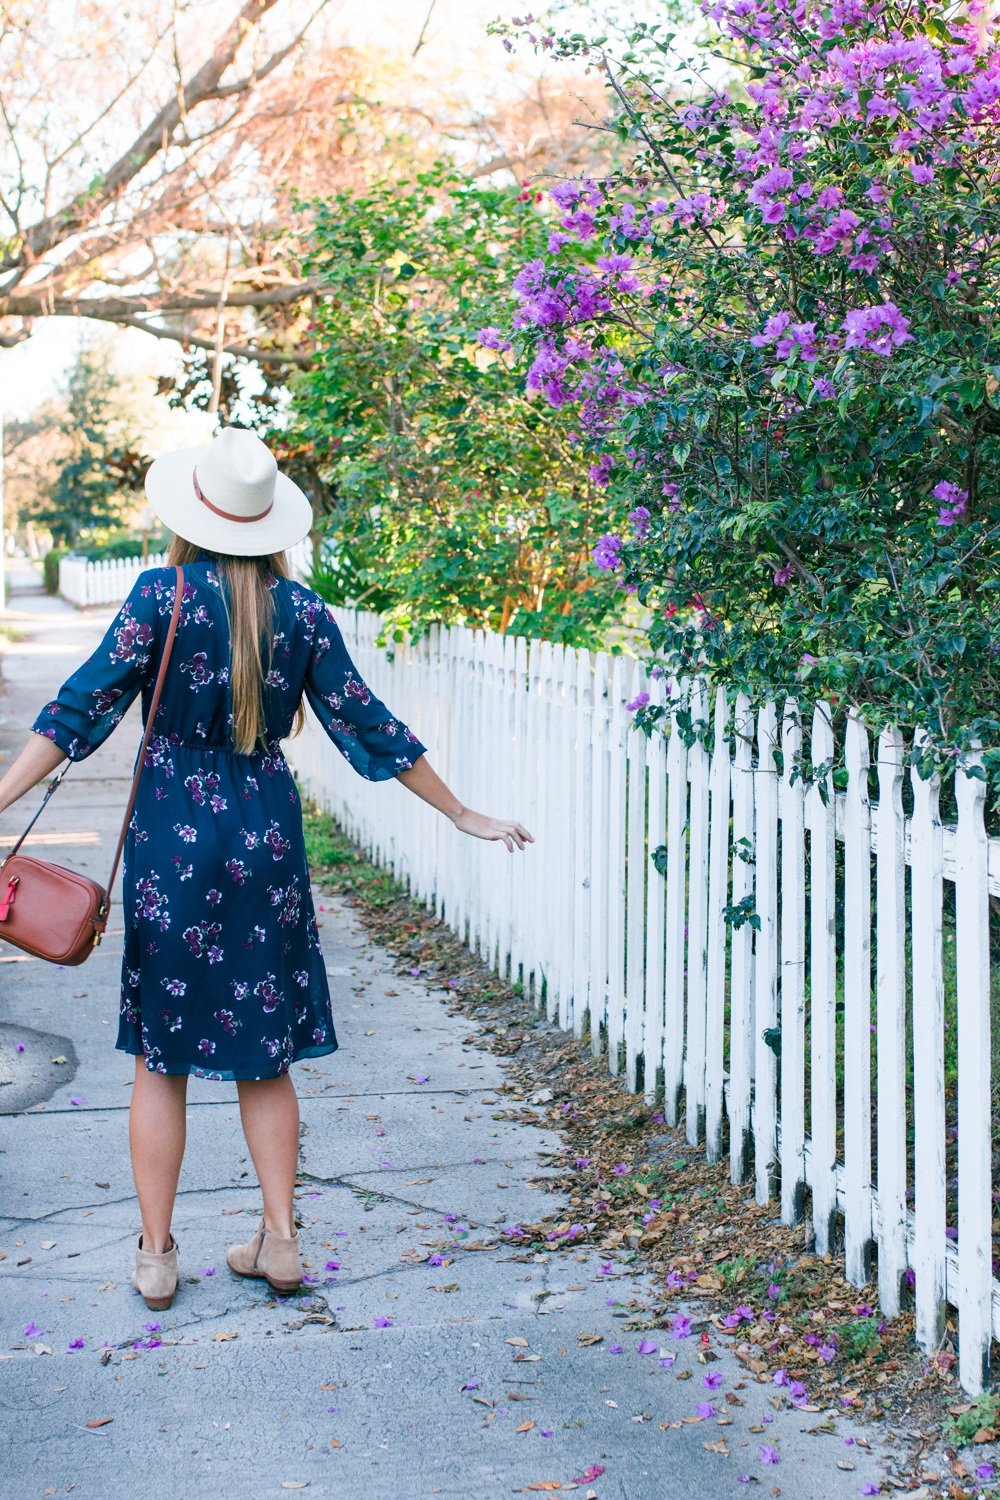 What to Wear in Florida in January / What to Wear in Florida In Dec / What to Wear in Florida During the Winter / Blue Floral Midi Dress // Long Sleeve Midi Dress with Ankle Boots / J.Crew Leather Bag / Panama Hat / Midi Dress for Work / More on www.sunshinestyleblog.com